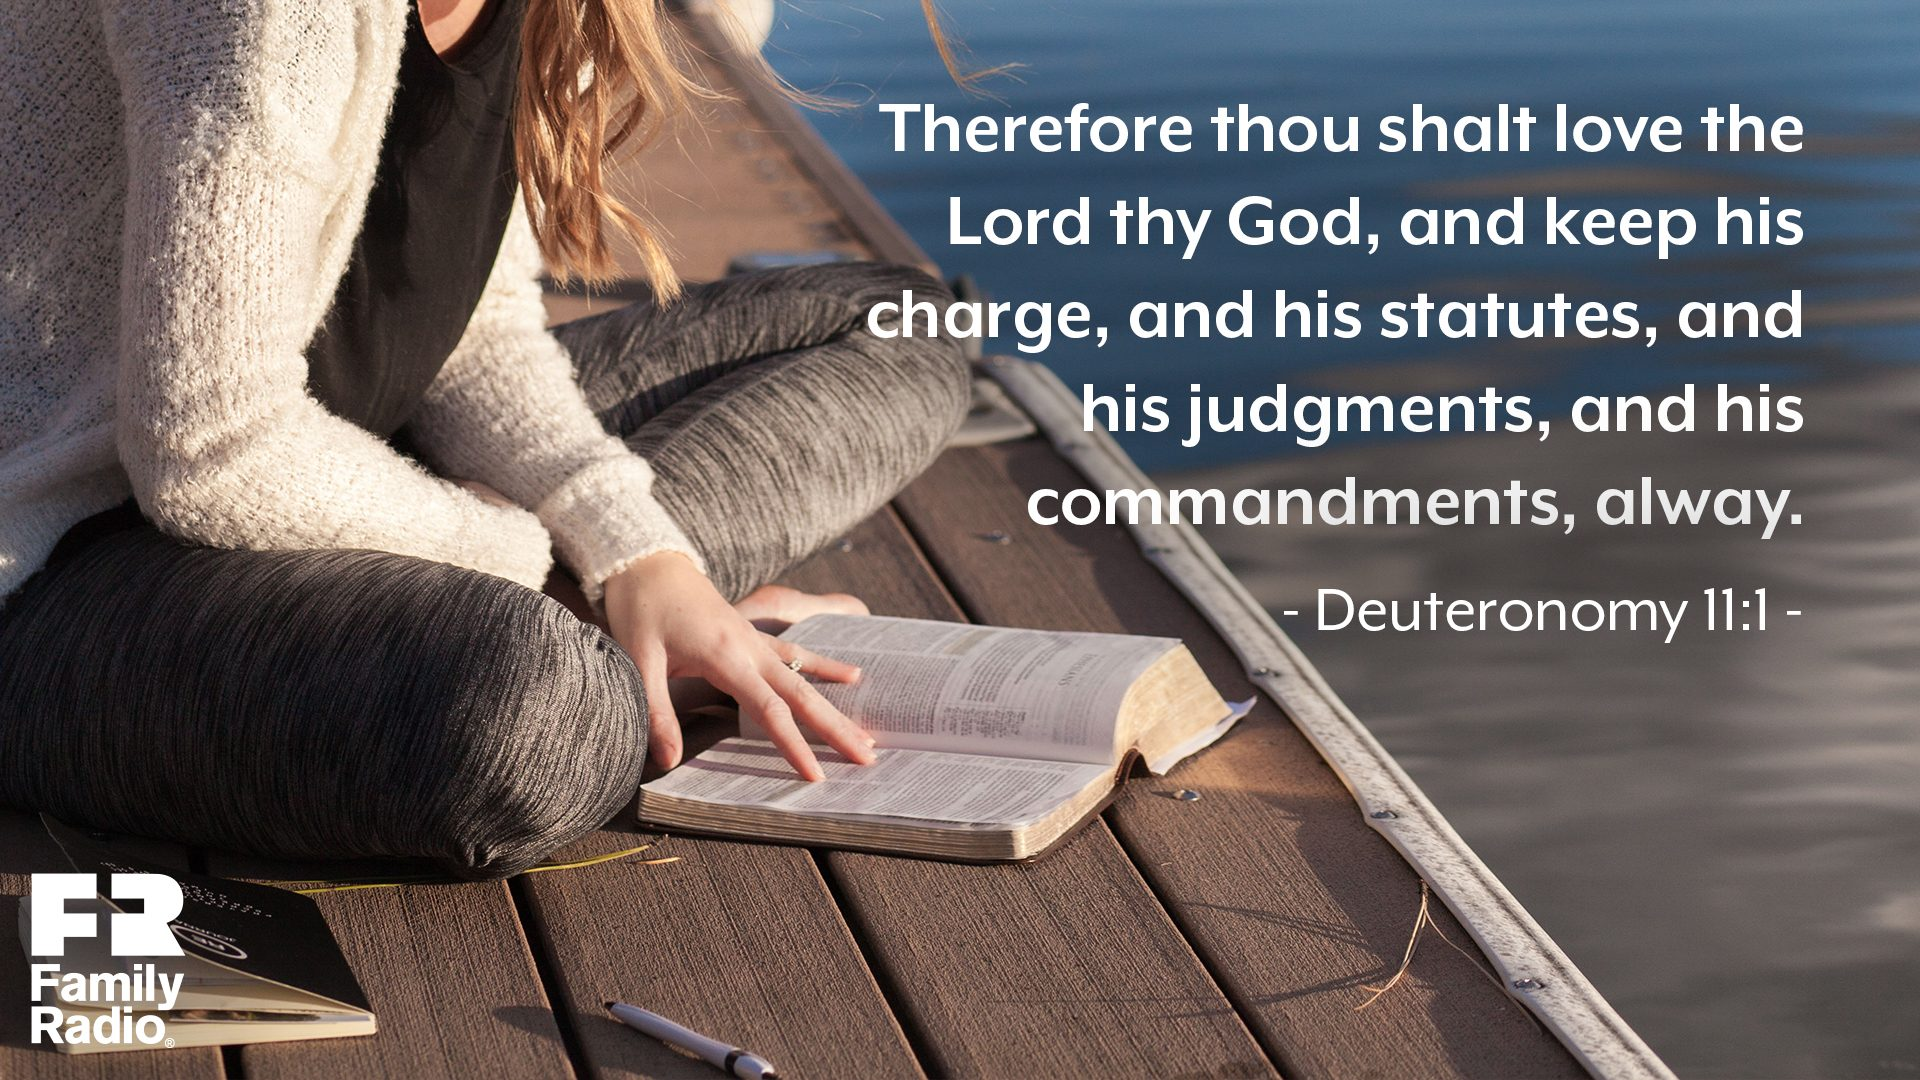 """Therefore thou shalt love the LORD thy God, and keep his charge, and his statutes, and his judgments, and his commandments, alway."""